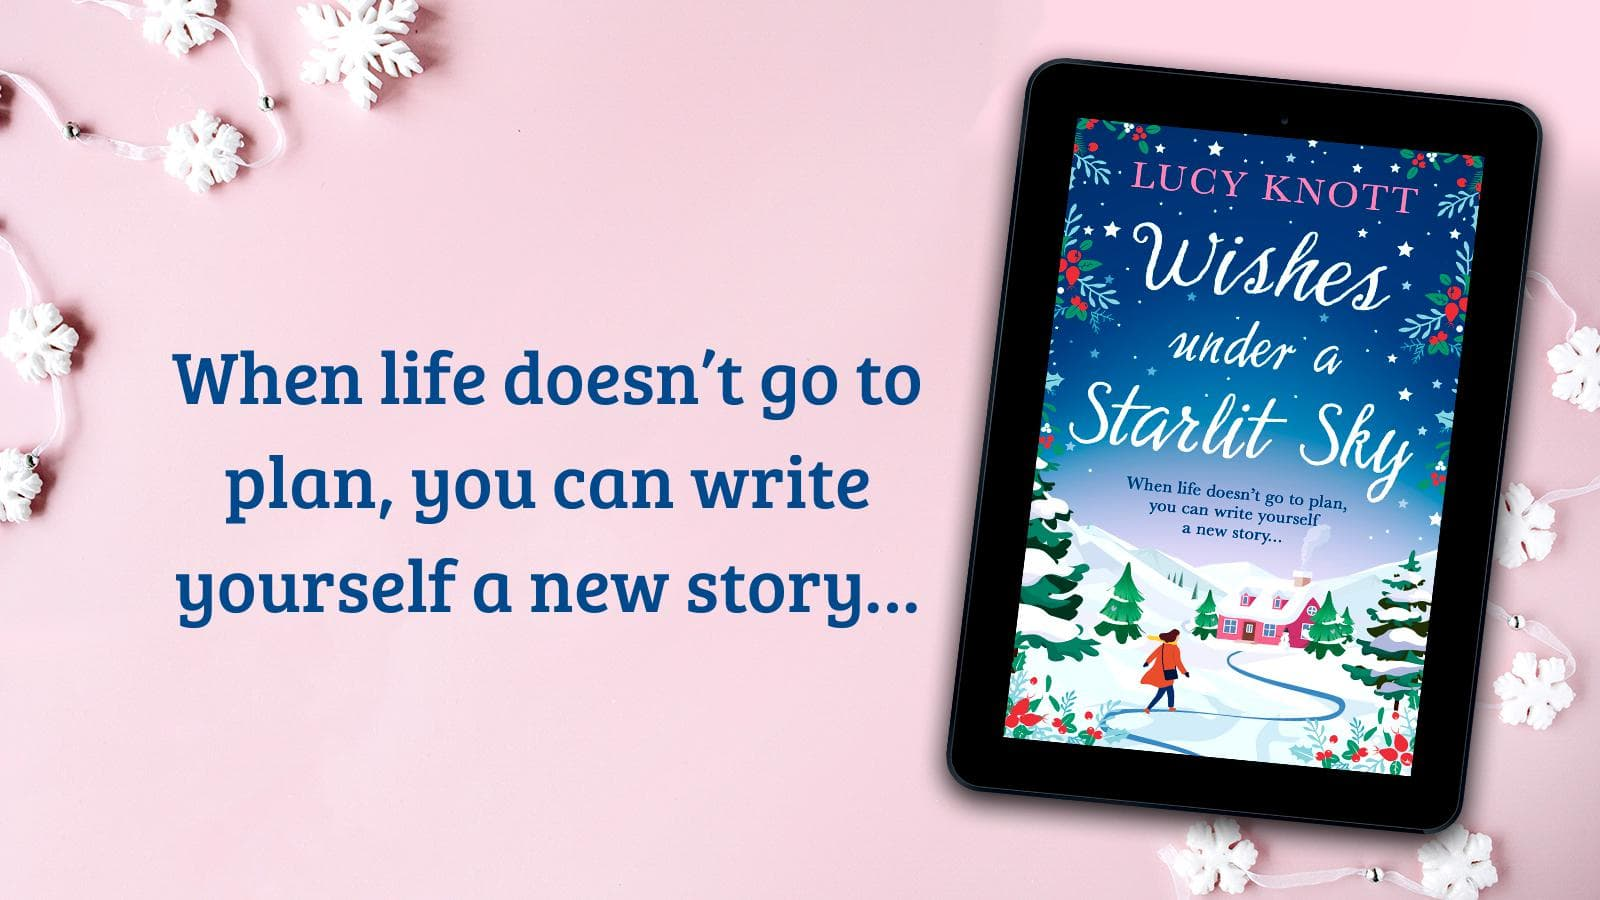 Pre-Order Wishes Under a Starlit Sky Today!